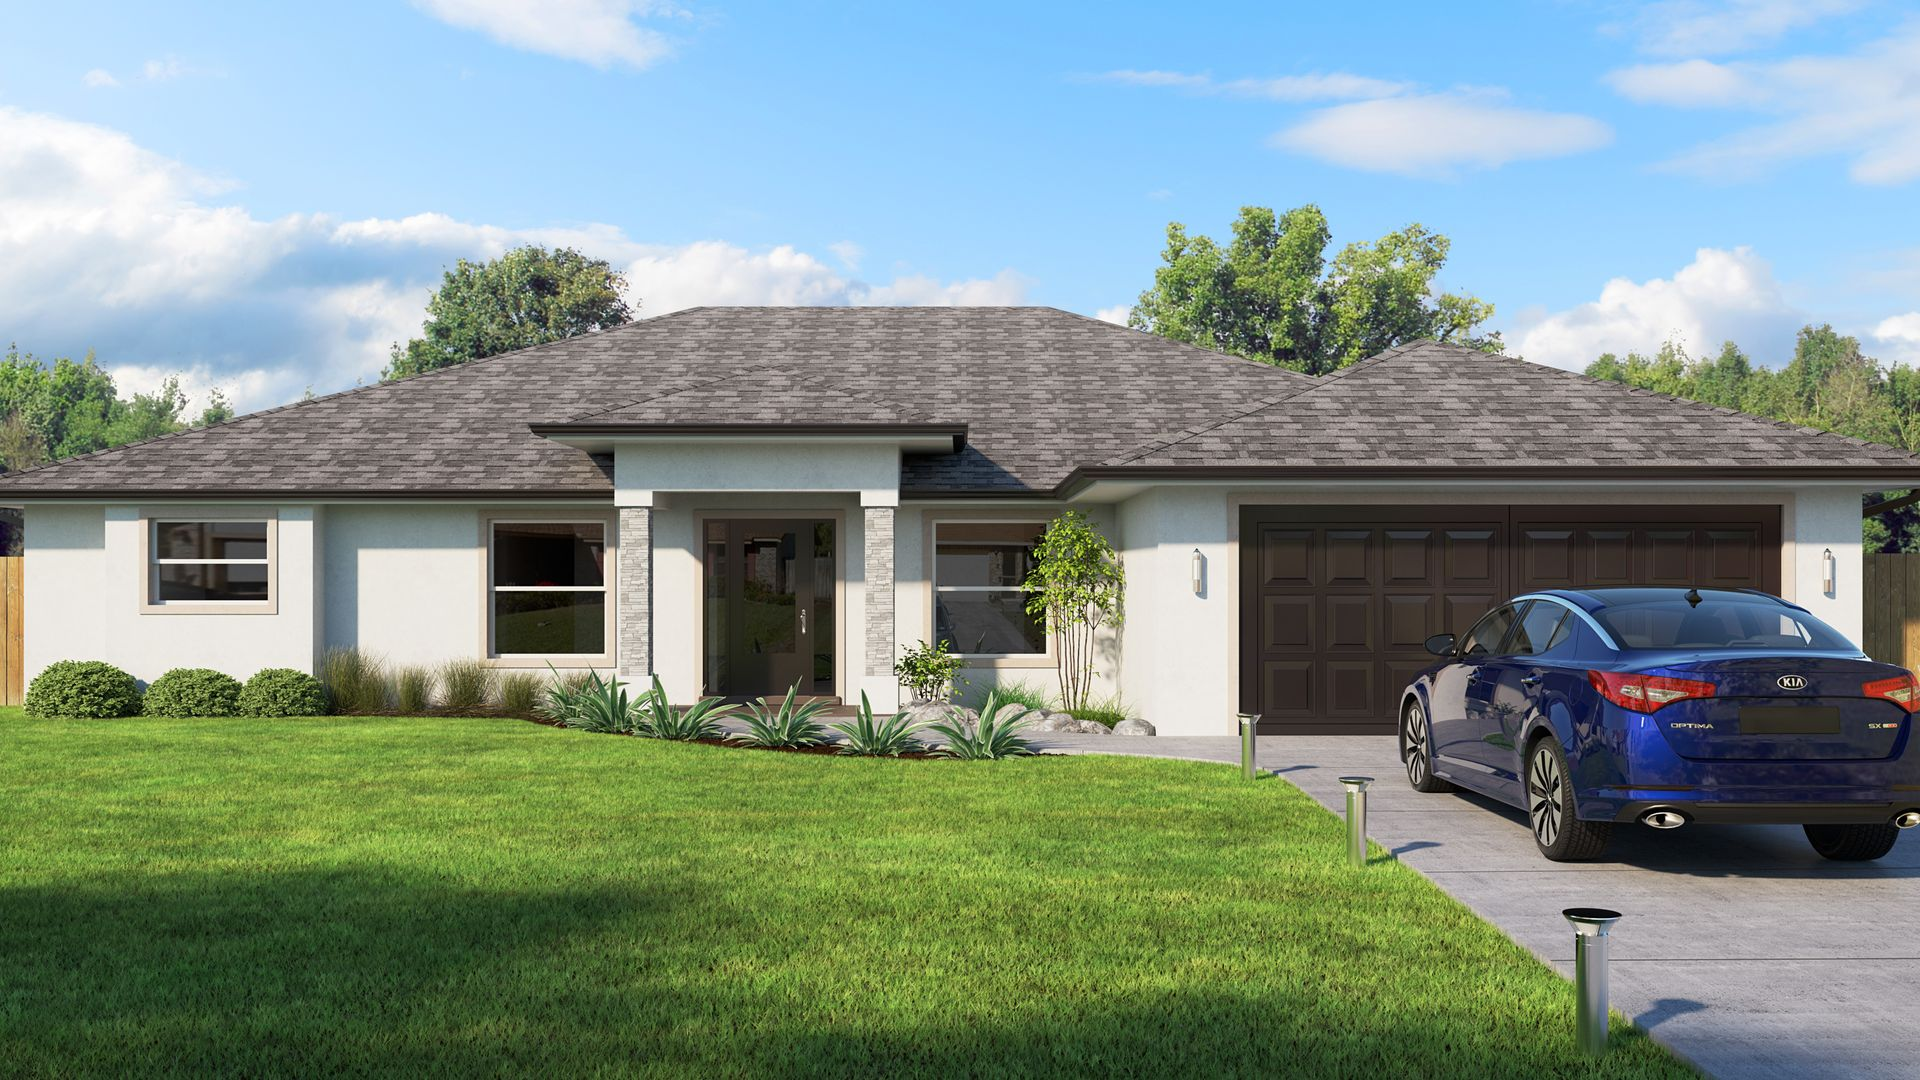 Brevard County FL For Sale by Owner (FSBO) - 293 Homes   Zillow on omega floor plans, icon floor plans, icc floor plans, keystone floor plans, columbia floor plans, coleman floor plans, champion floor plans, clean floor plans, titan floor plans, remington floor plans, echo floor plans, ford floor plans, marathon floor plans, access floor plans, go floor plans, bistro floor plans, sony floor plans, crown floor plans, american eagle floor plans, vanguard floor plans,